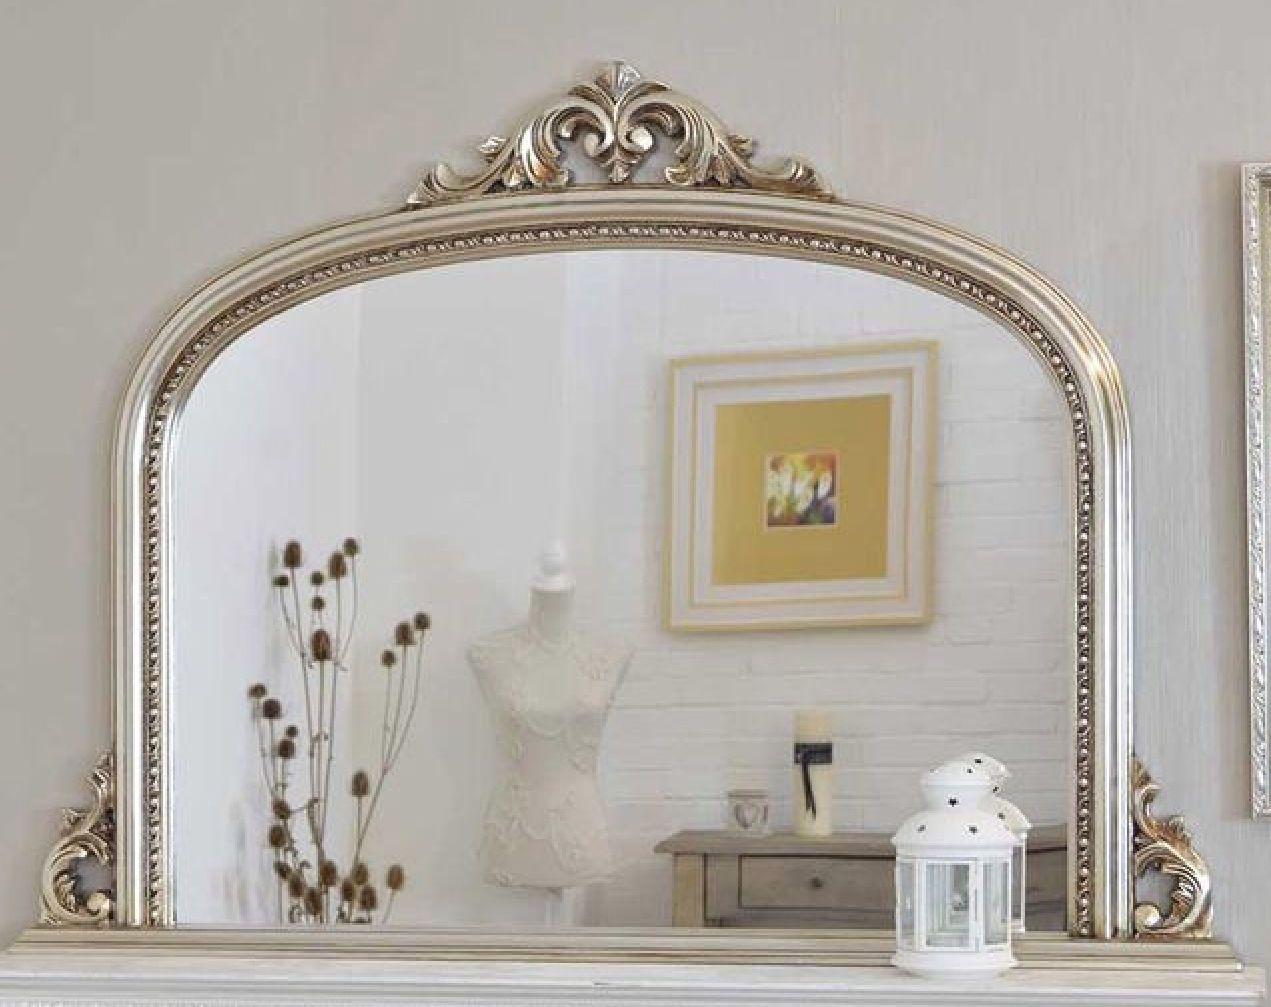 Silver Overmantle Mirror Mooie Zilveren Schouwspiegel Httpwww With Regard To Overmantel Mirror (Image 11 of 15)